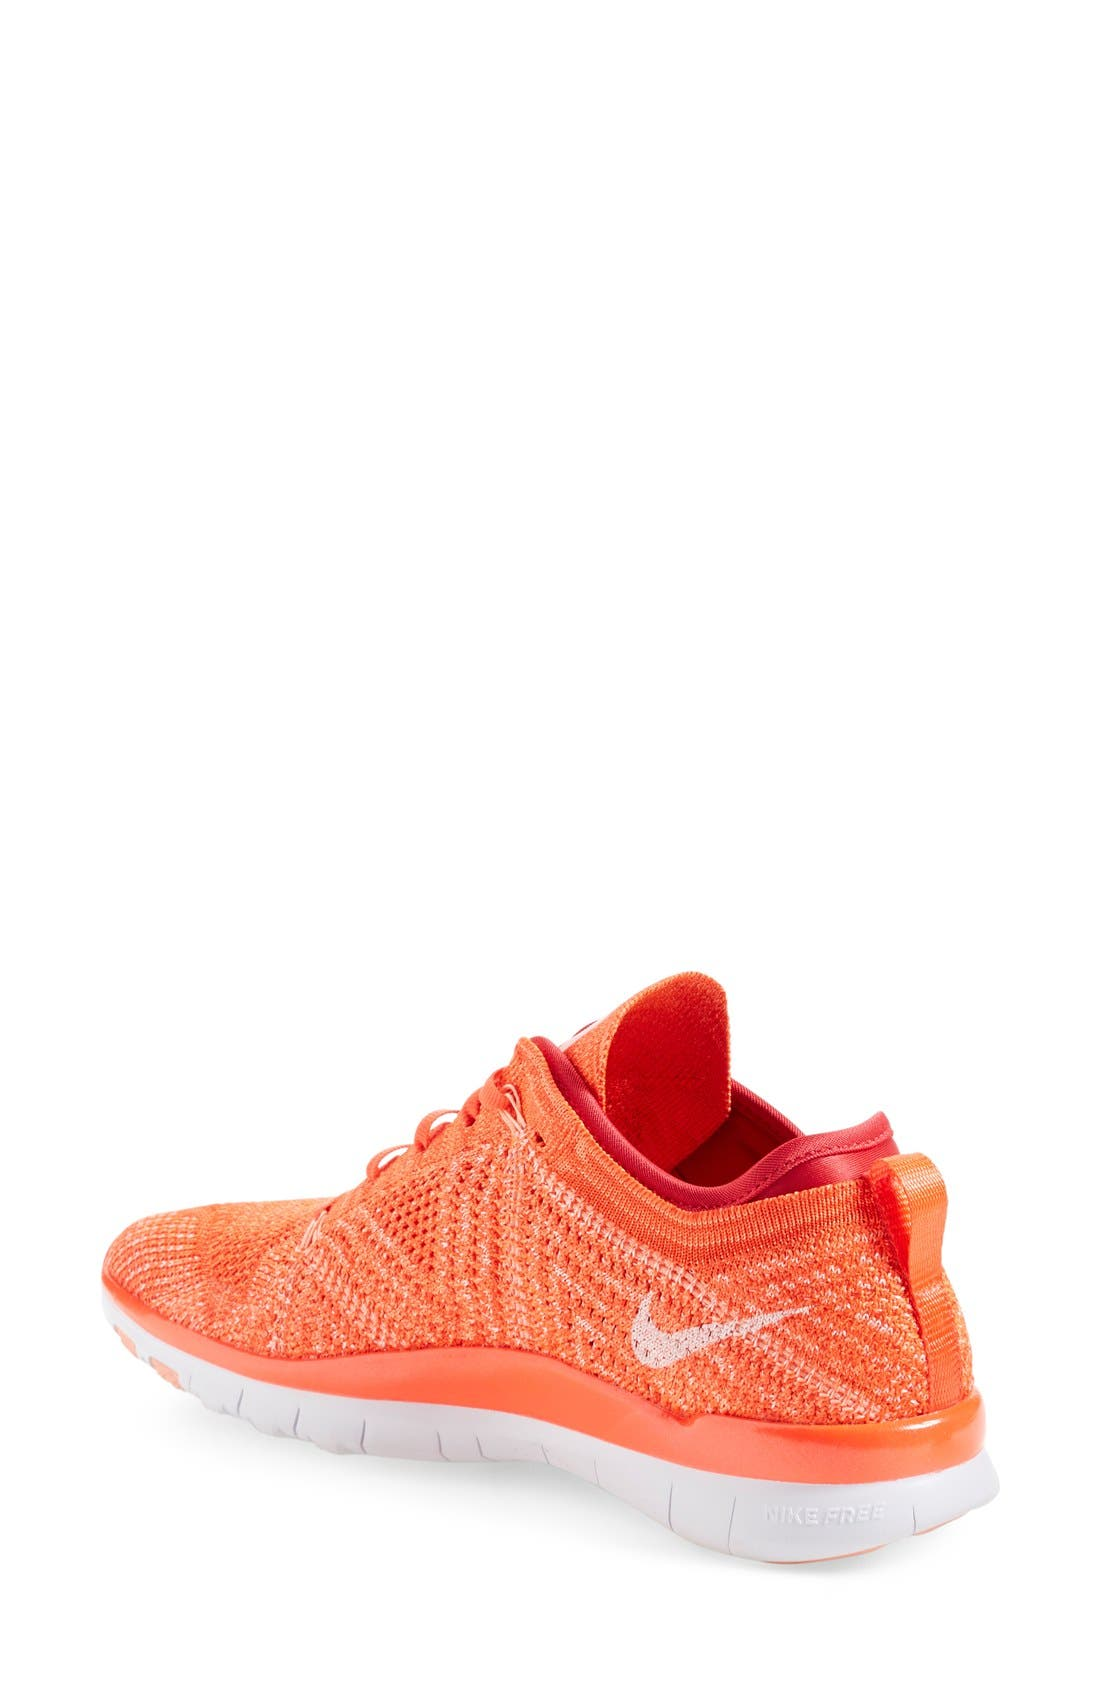 'Free Flyknit 5.0 TR' Training Shoe,                             Alternate thumbnail 53, color,